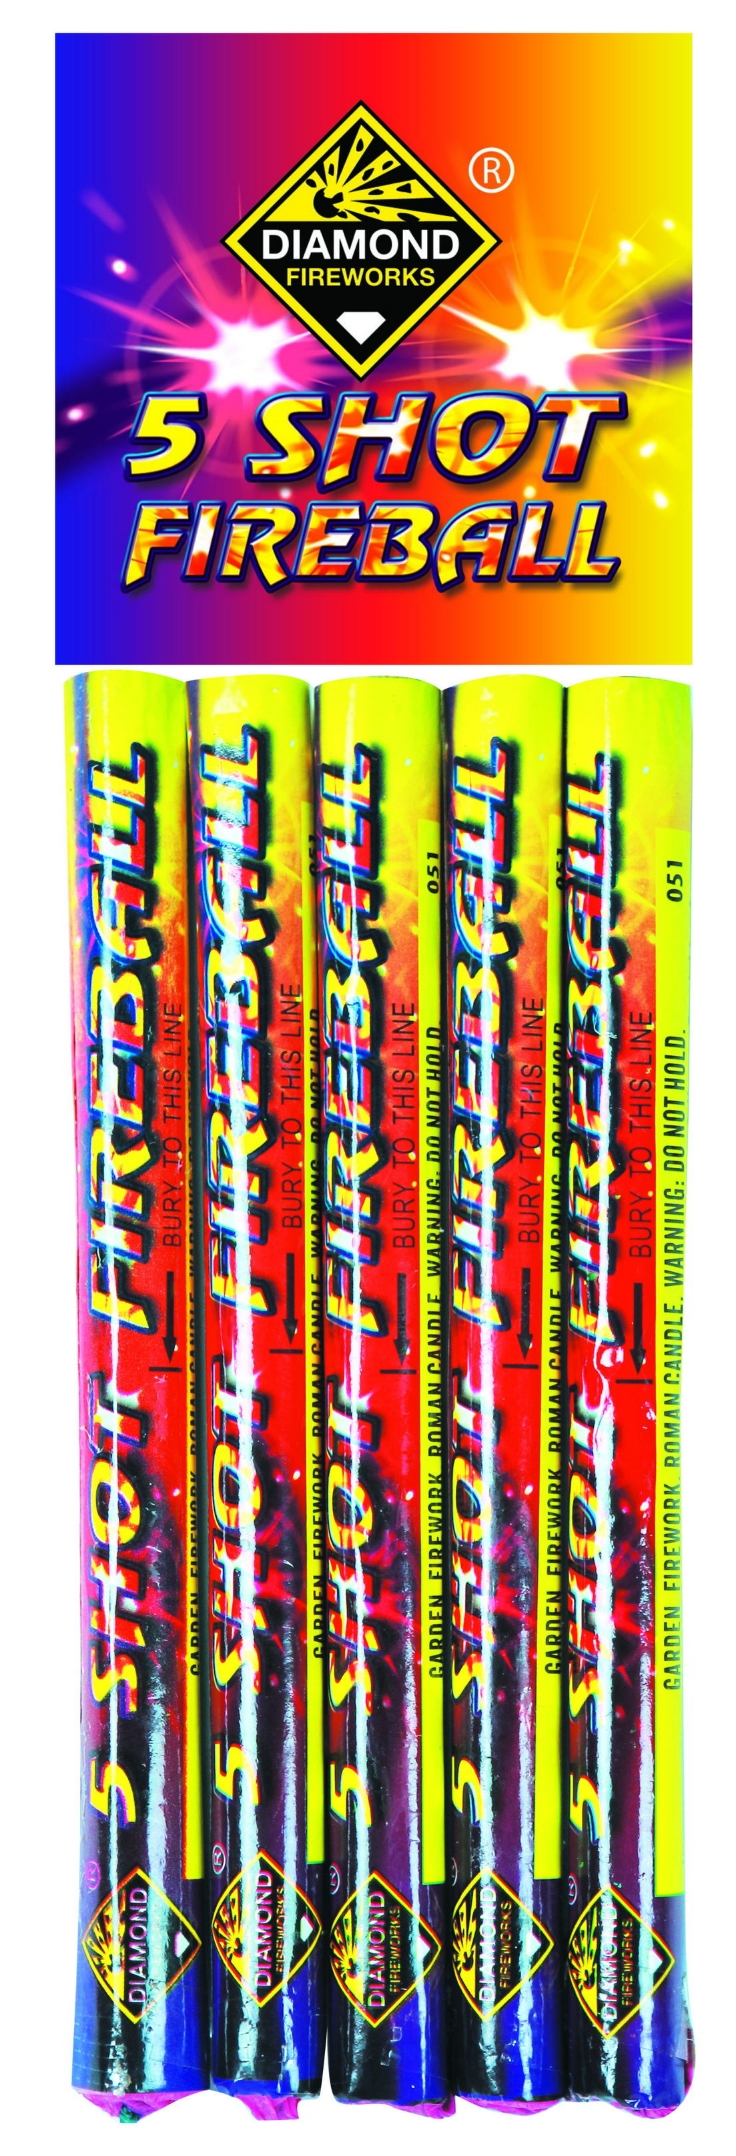 5 Shot Fireball 5pk - RRP £3.50